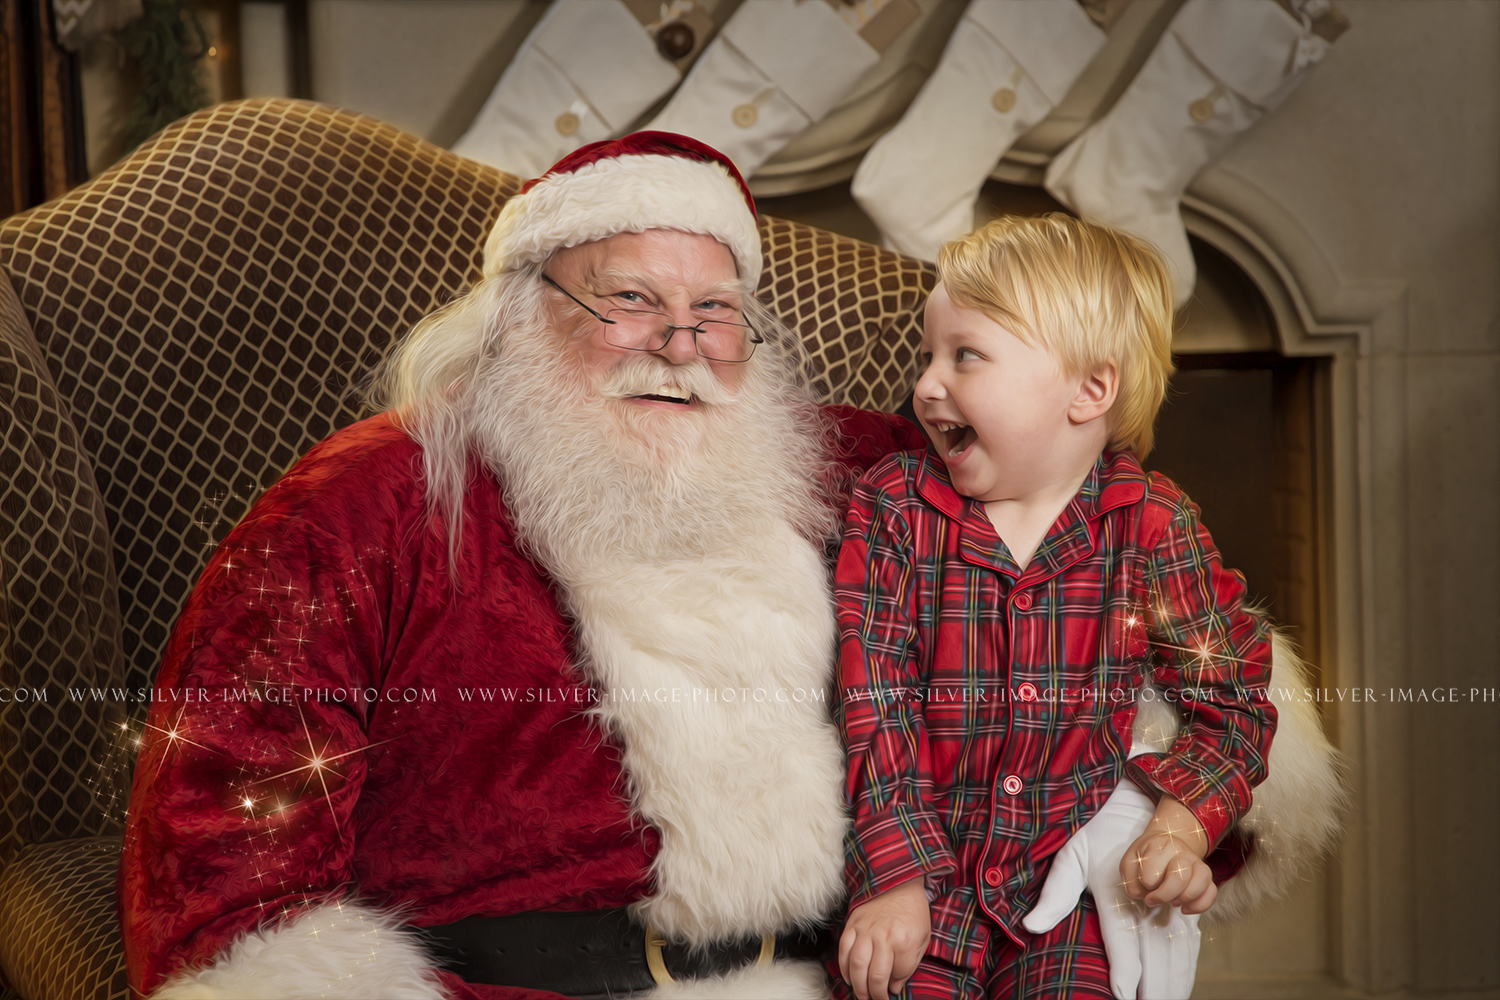 Silver Image Photography - Real bearded Santa photos in Spring, TX https://www.silver-image-photo.com